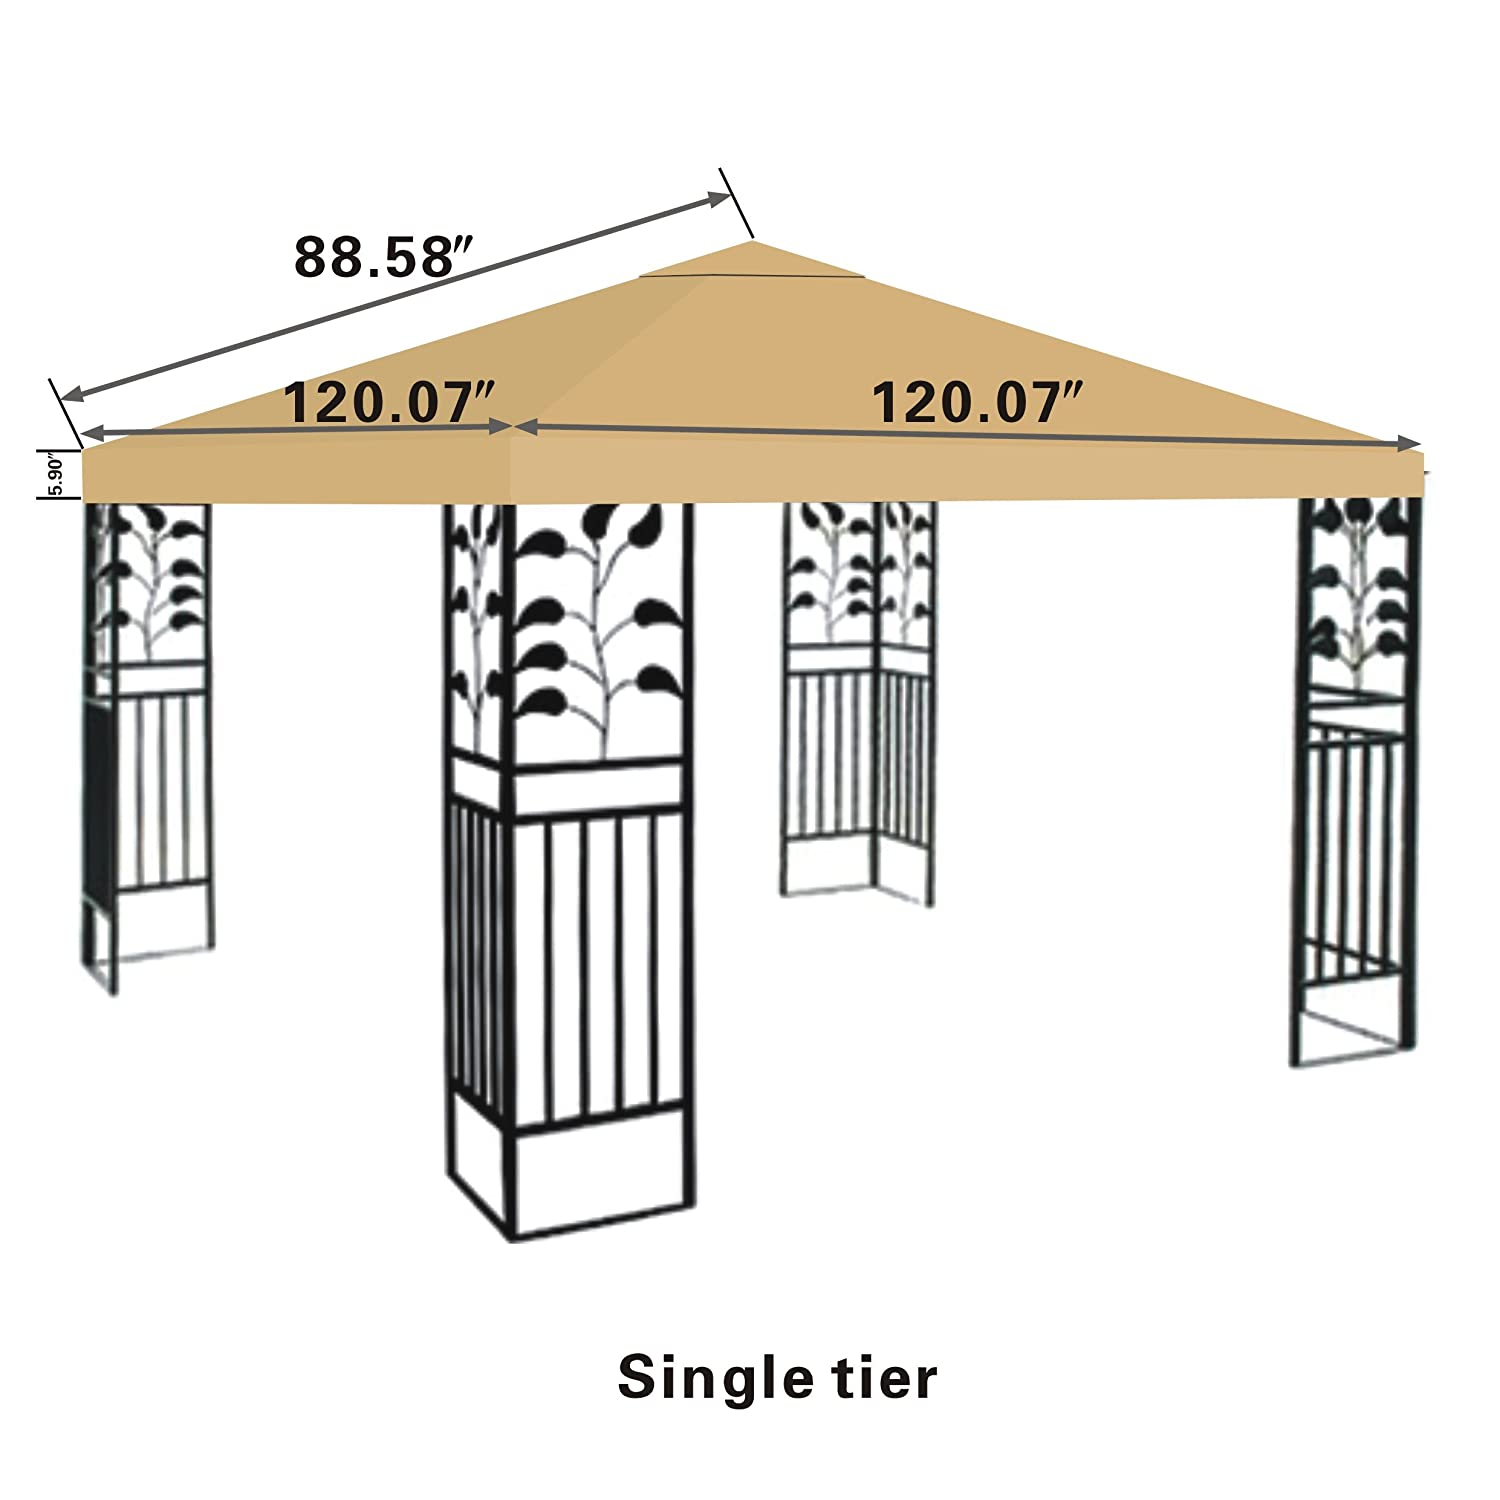 Amazon.com  STRONG CAMEL Replacement 10u0027X10u0027gazebo canopy top patio pavilion cover sunshade plyester single tier-BEIGE  Garden u0026 Outdoor  sc 1 st  Amazon.com : gazebo canopy replacement covers 10x10 - memphite.com